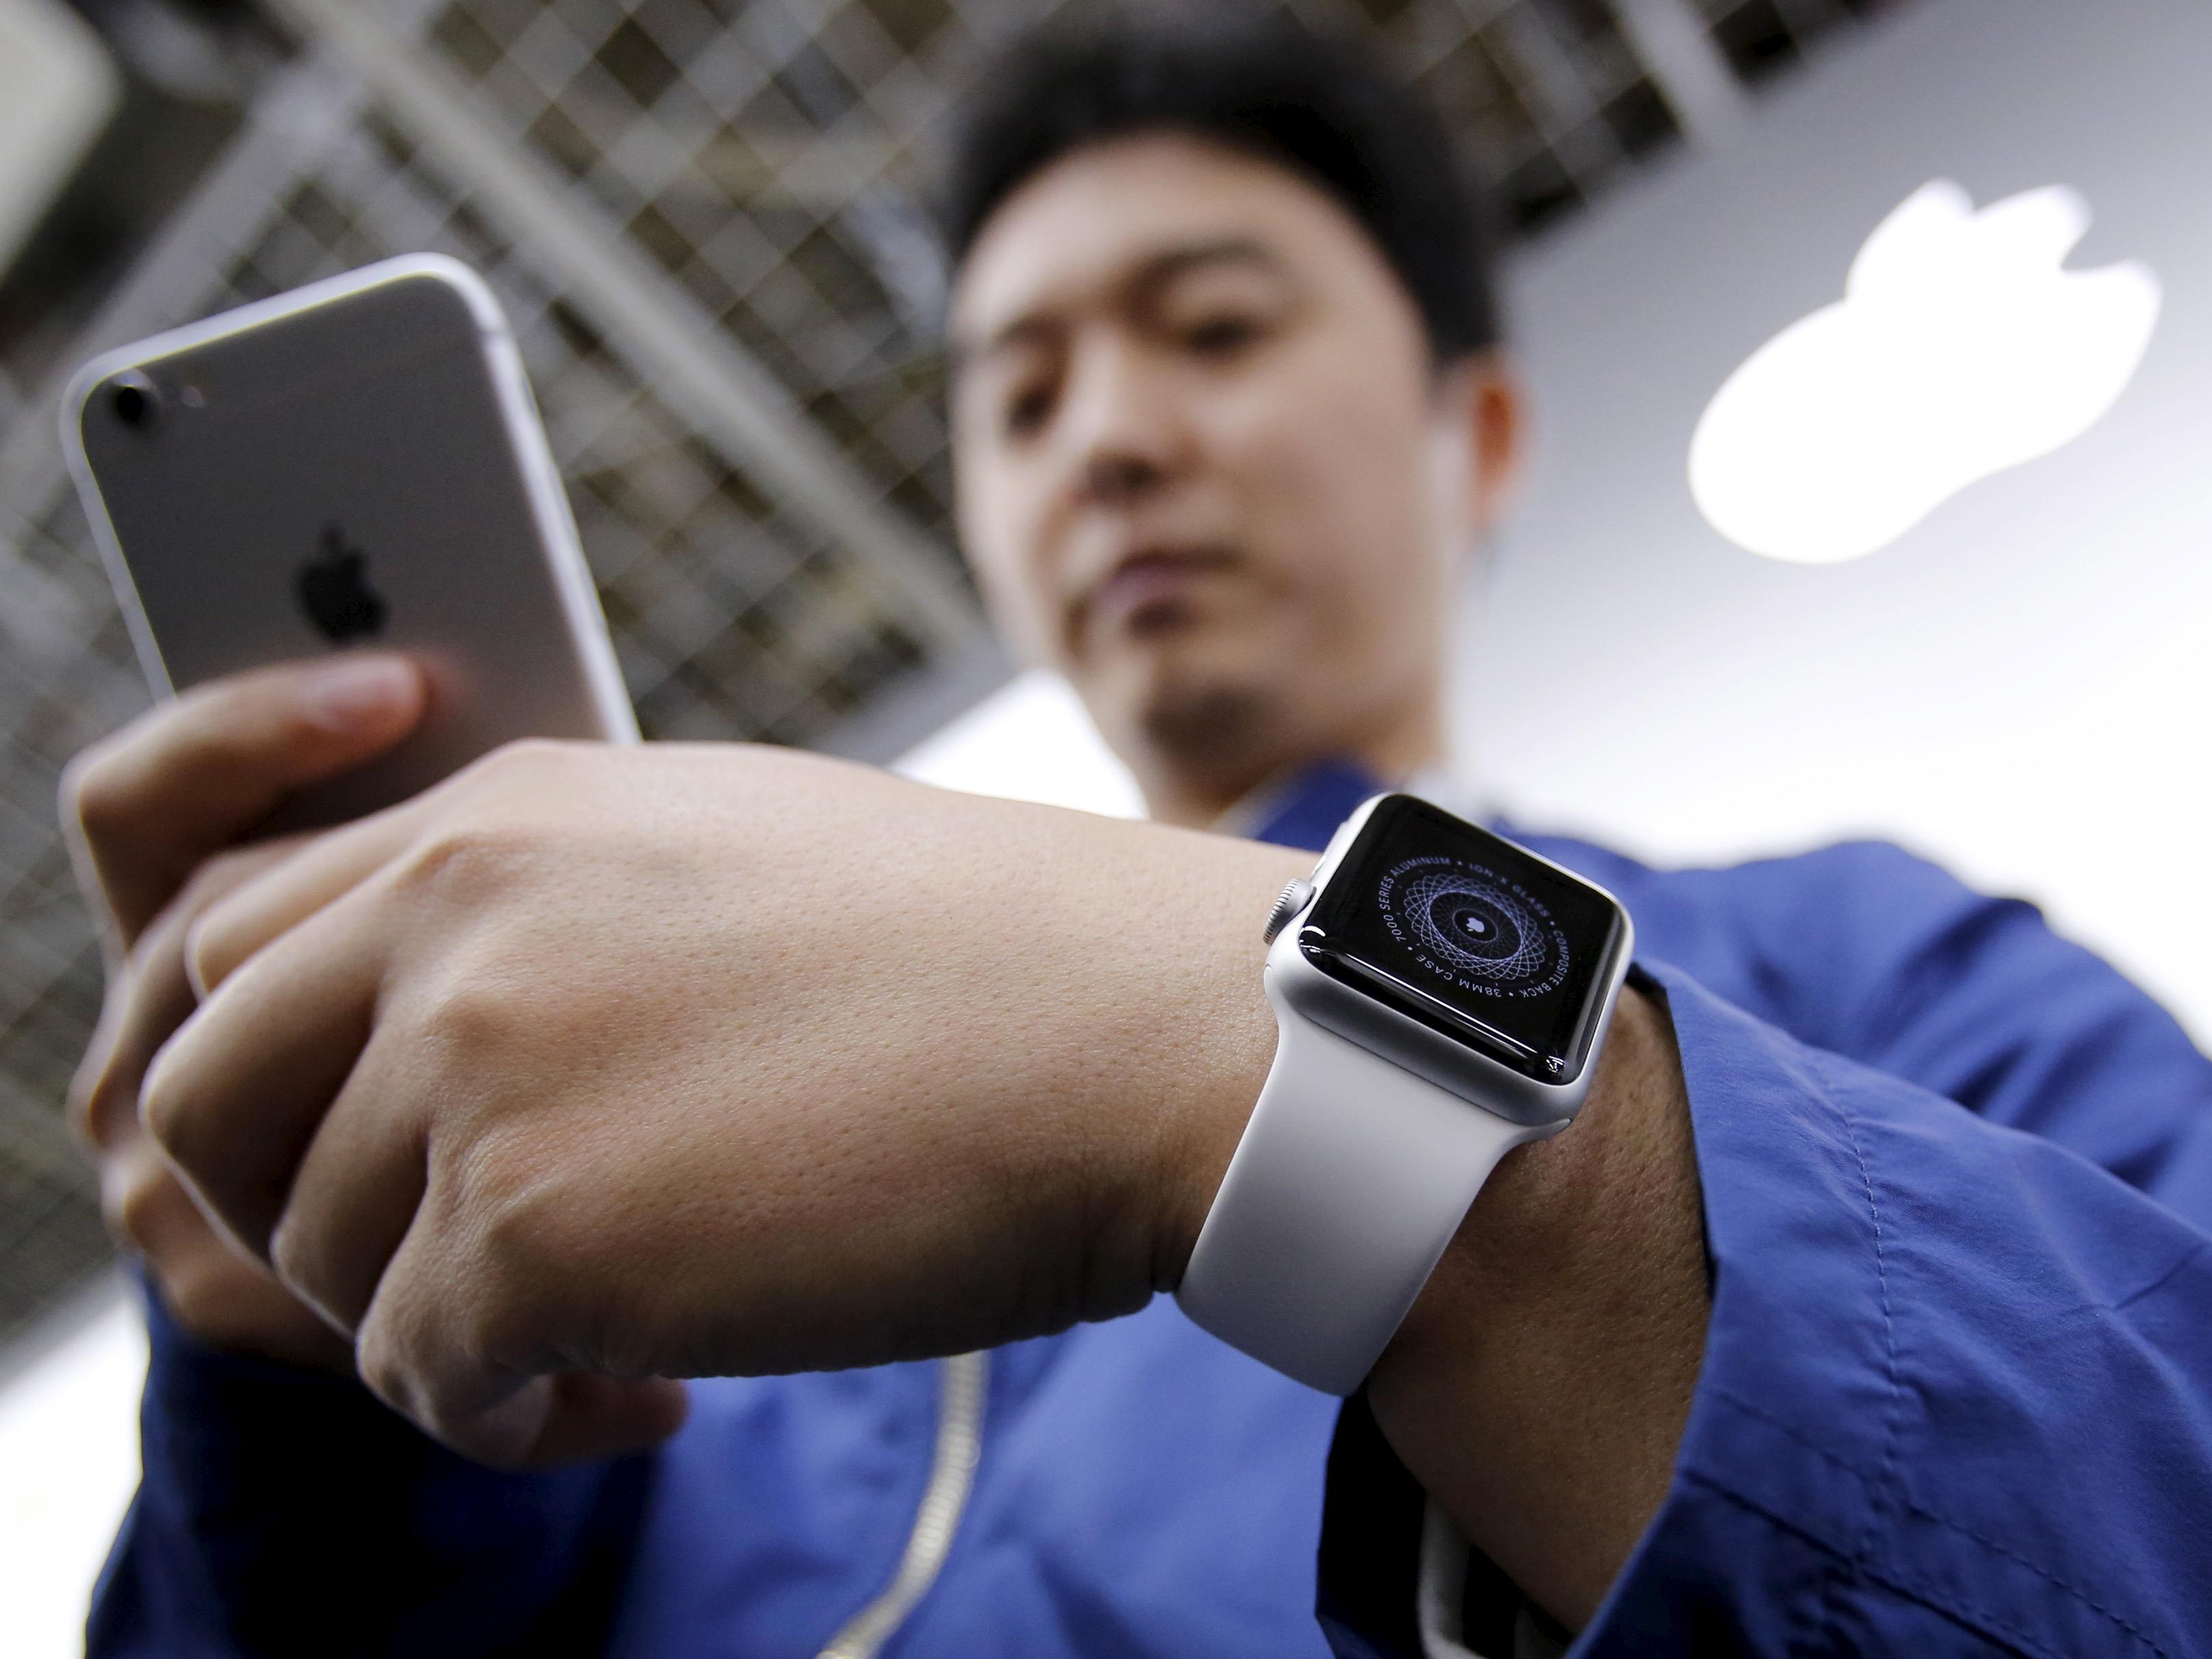 Apple has sold over 1 million Watches in China according to this study